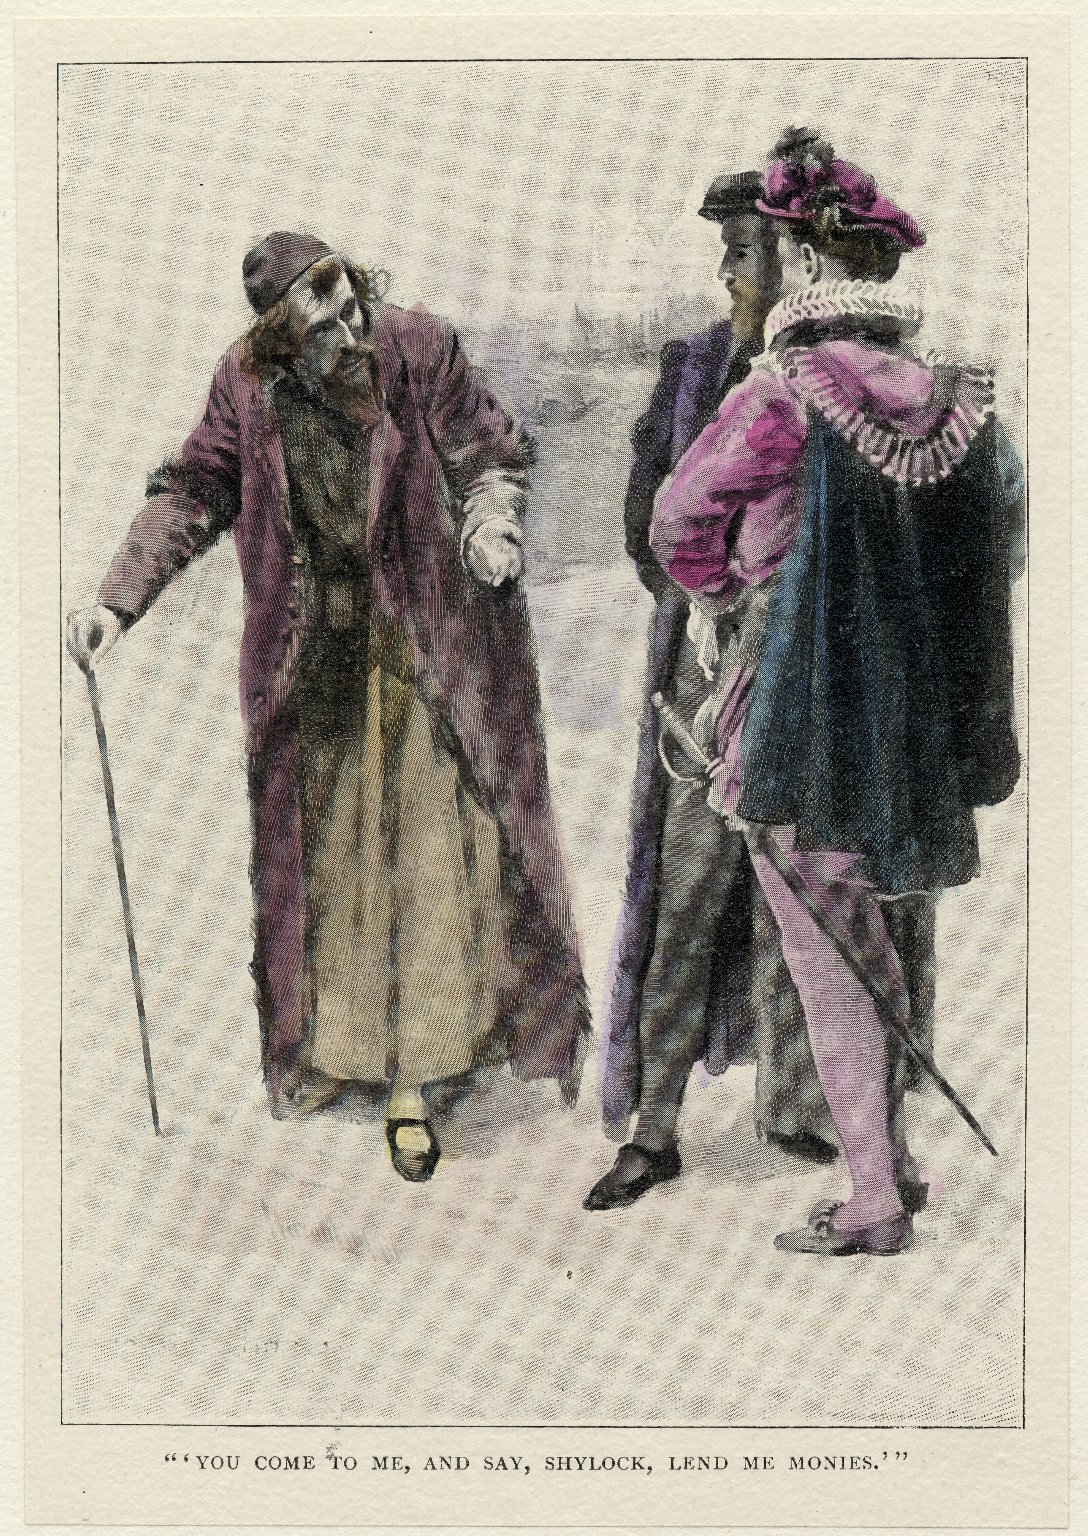 """[Merchant of Venice] [graphic] : [I, 3] """"You come to me, and say, Shylock, lend me monies."""""""